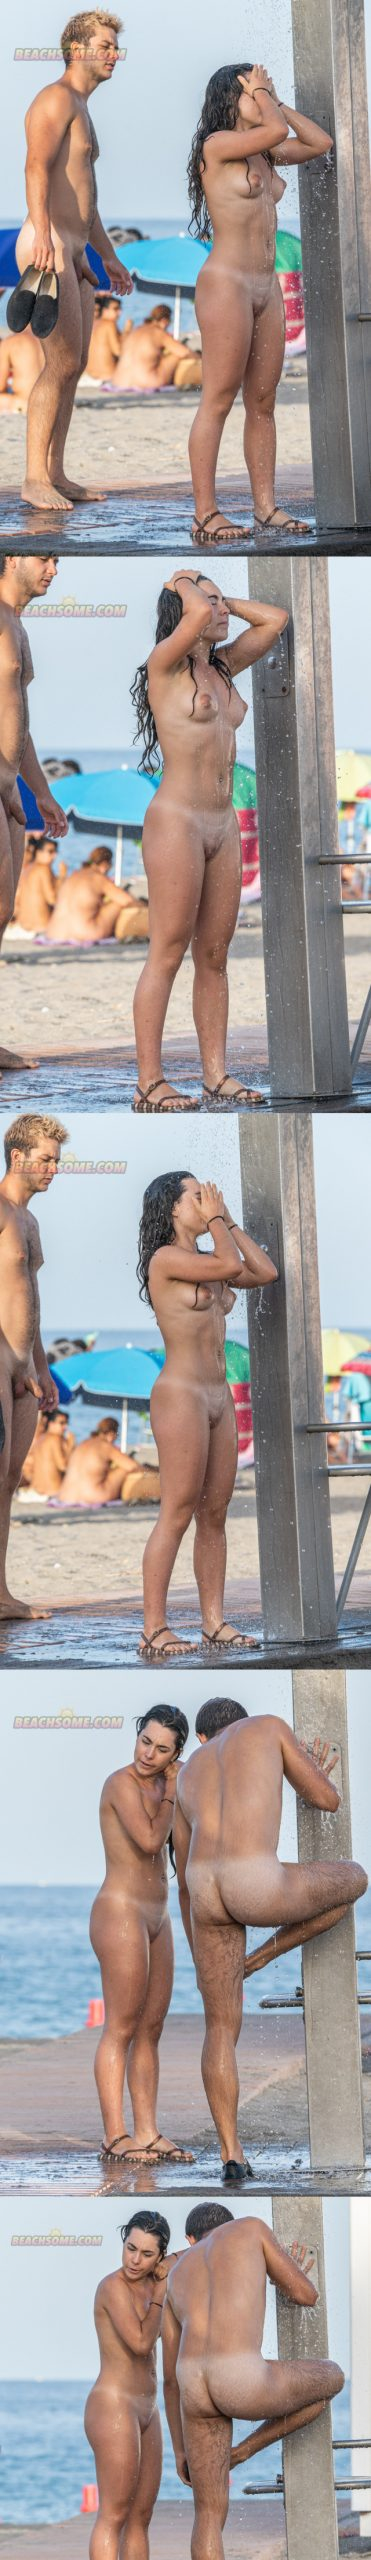 straight nudist guy taking a shower at the beach